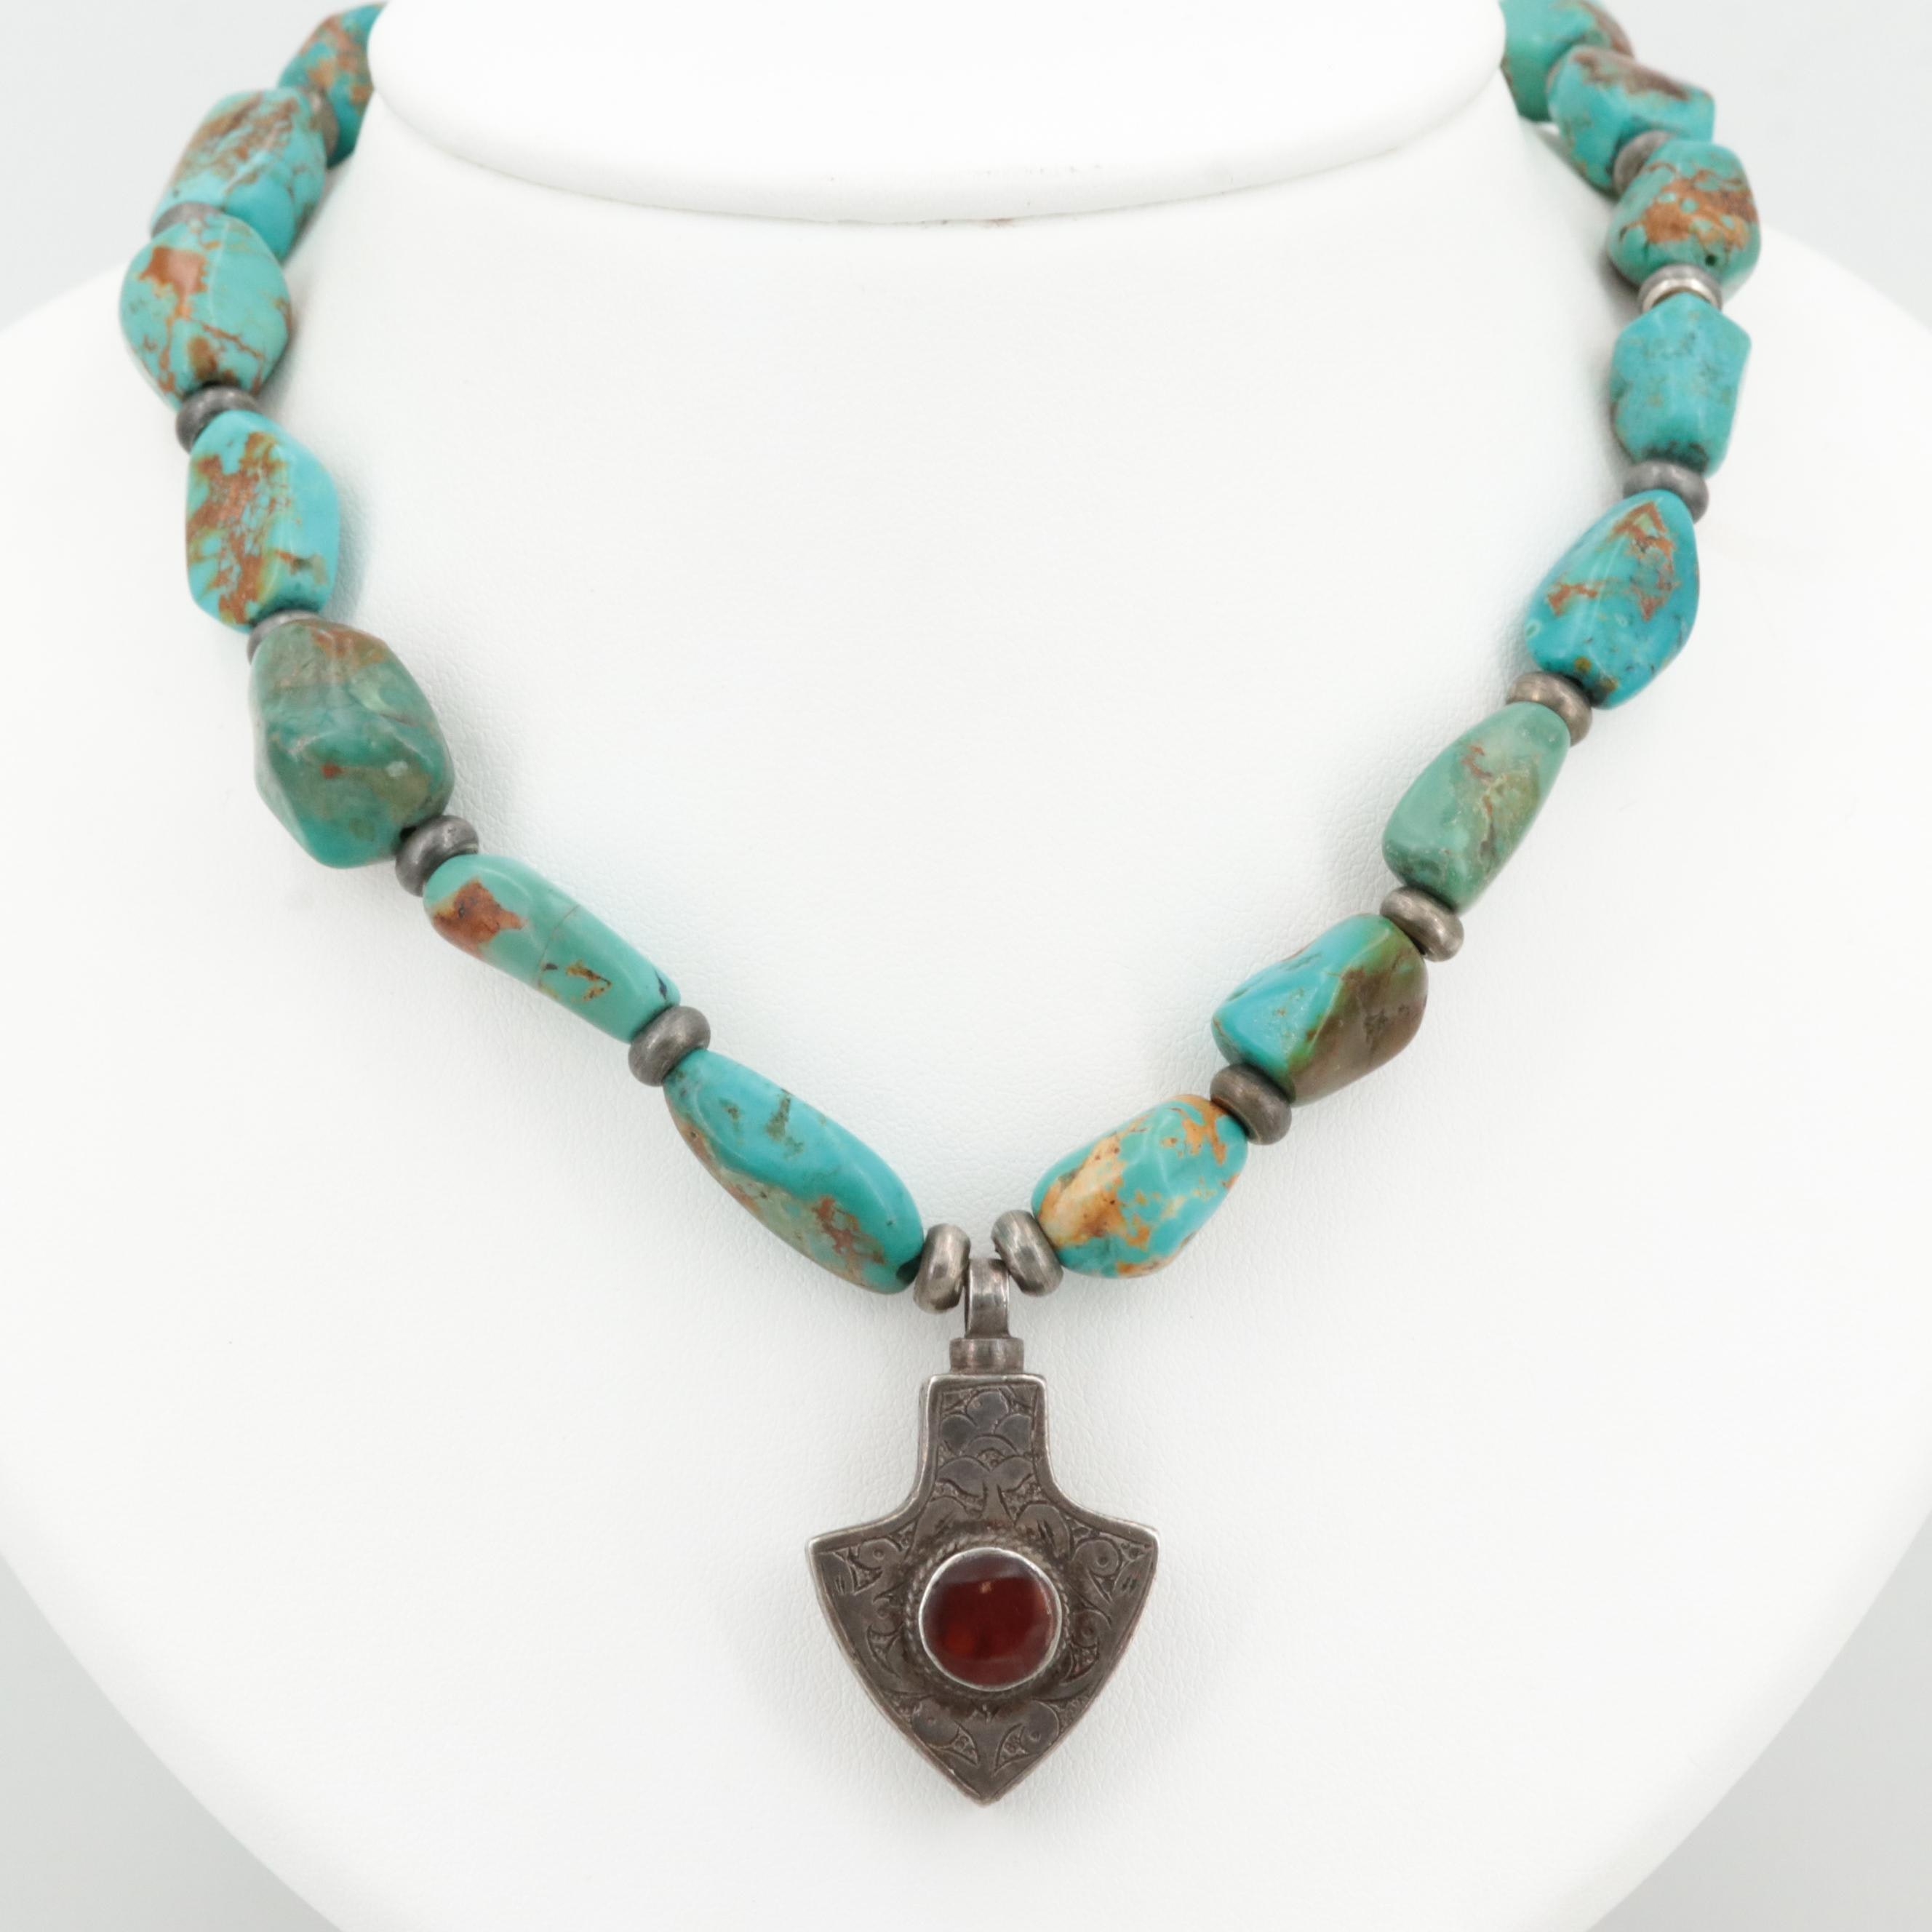 Vintage Turkomen Style Sterling and 800 Silver Turquoise and Carnelian Necklace